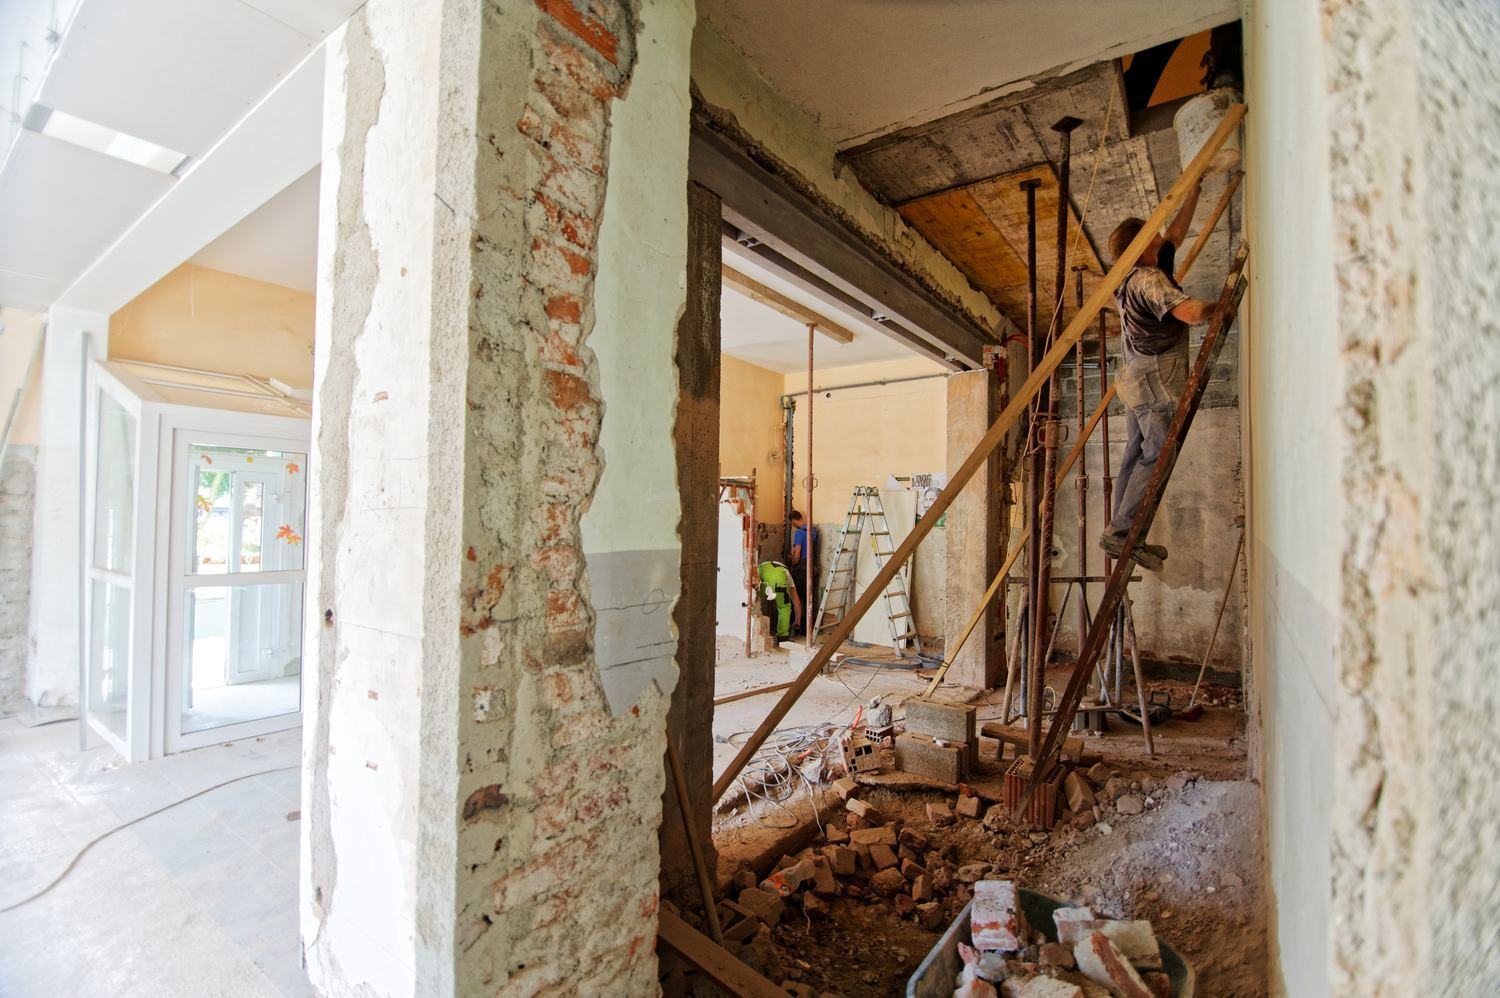 An asbestos inspection is a legal requirement for all commercial refurbishments in Melbourne and Victoria - even if within a residential home.